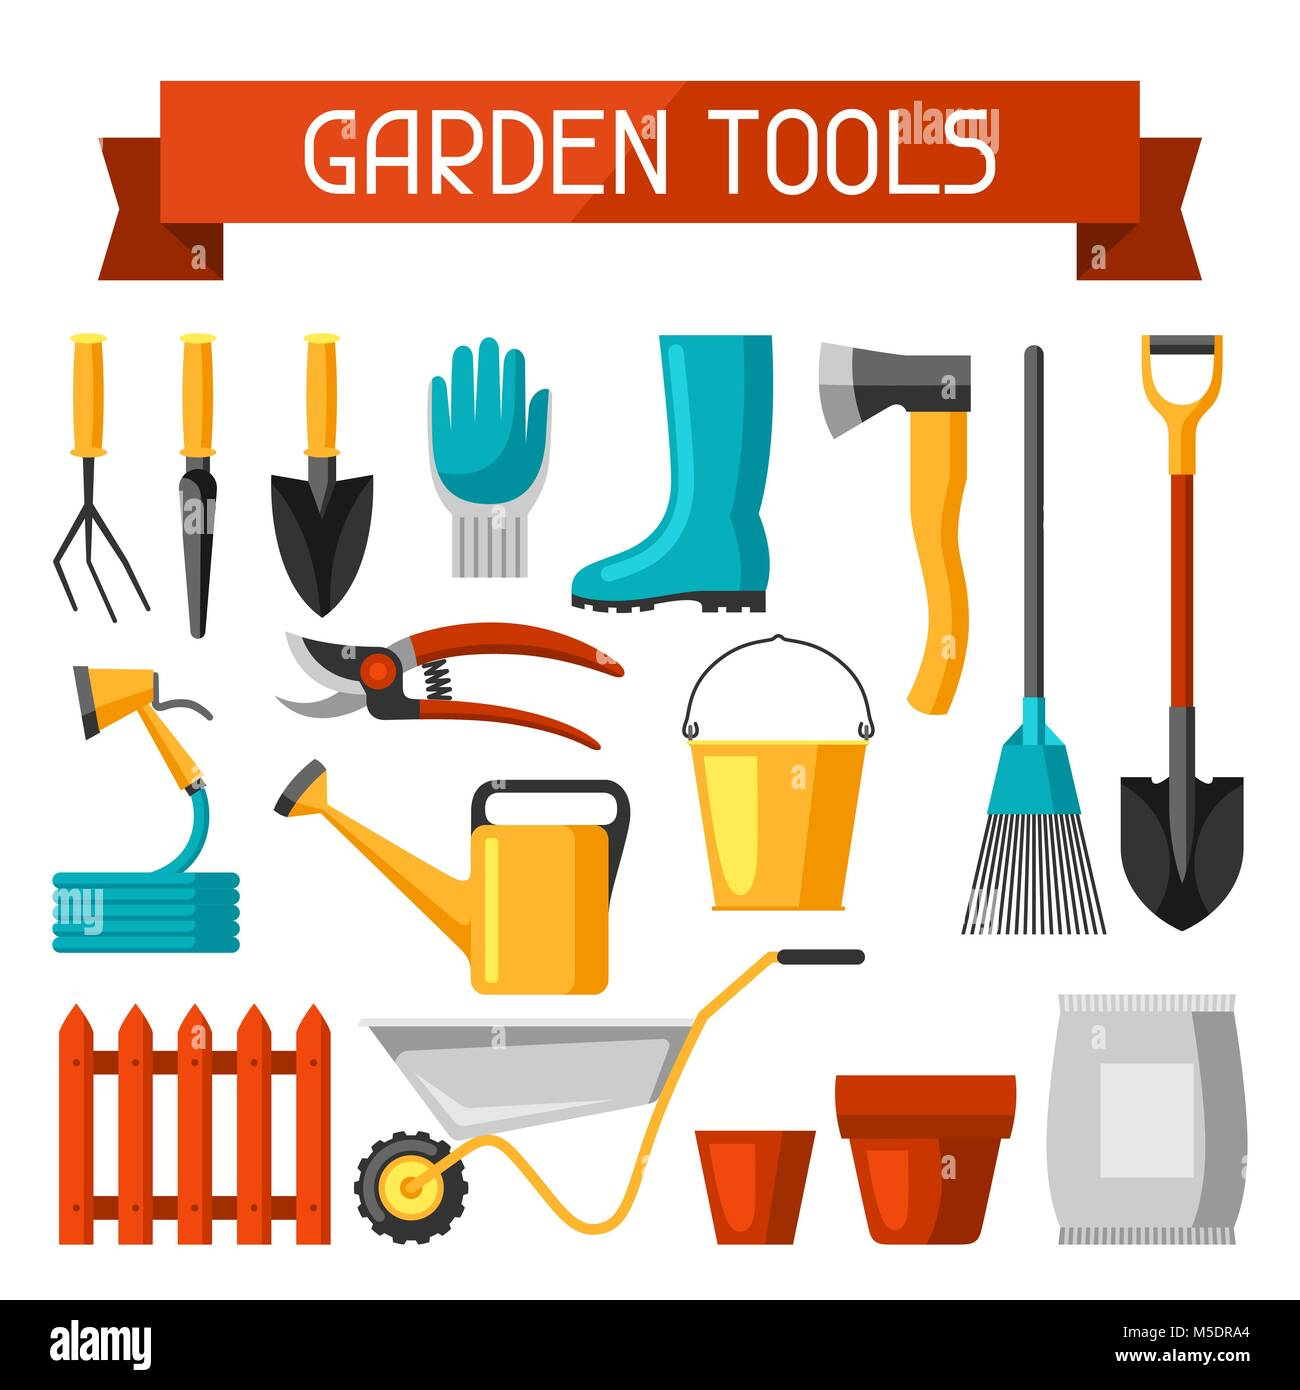 Delicieux Seamless Pattern With Garden Tools And Icons. All For Gardening Business  Illustration